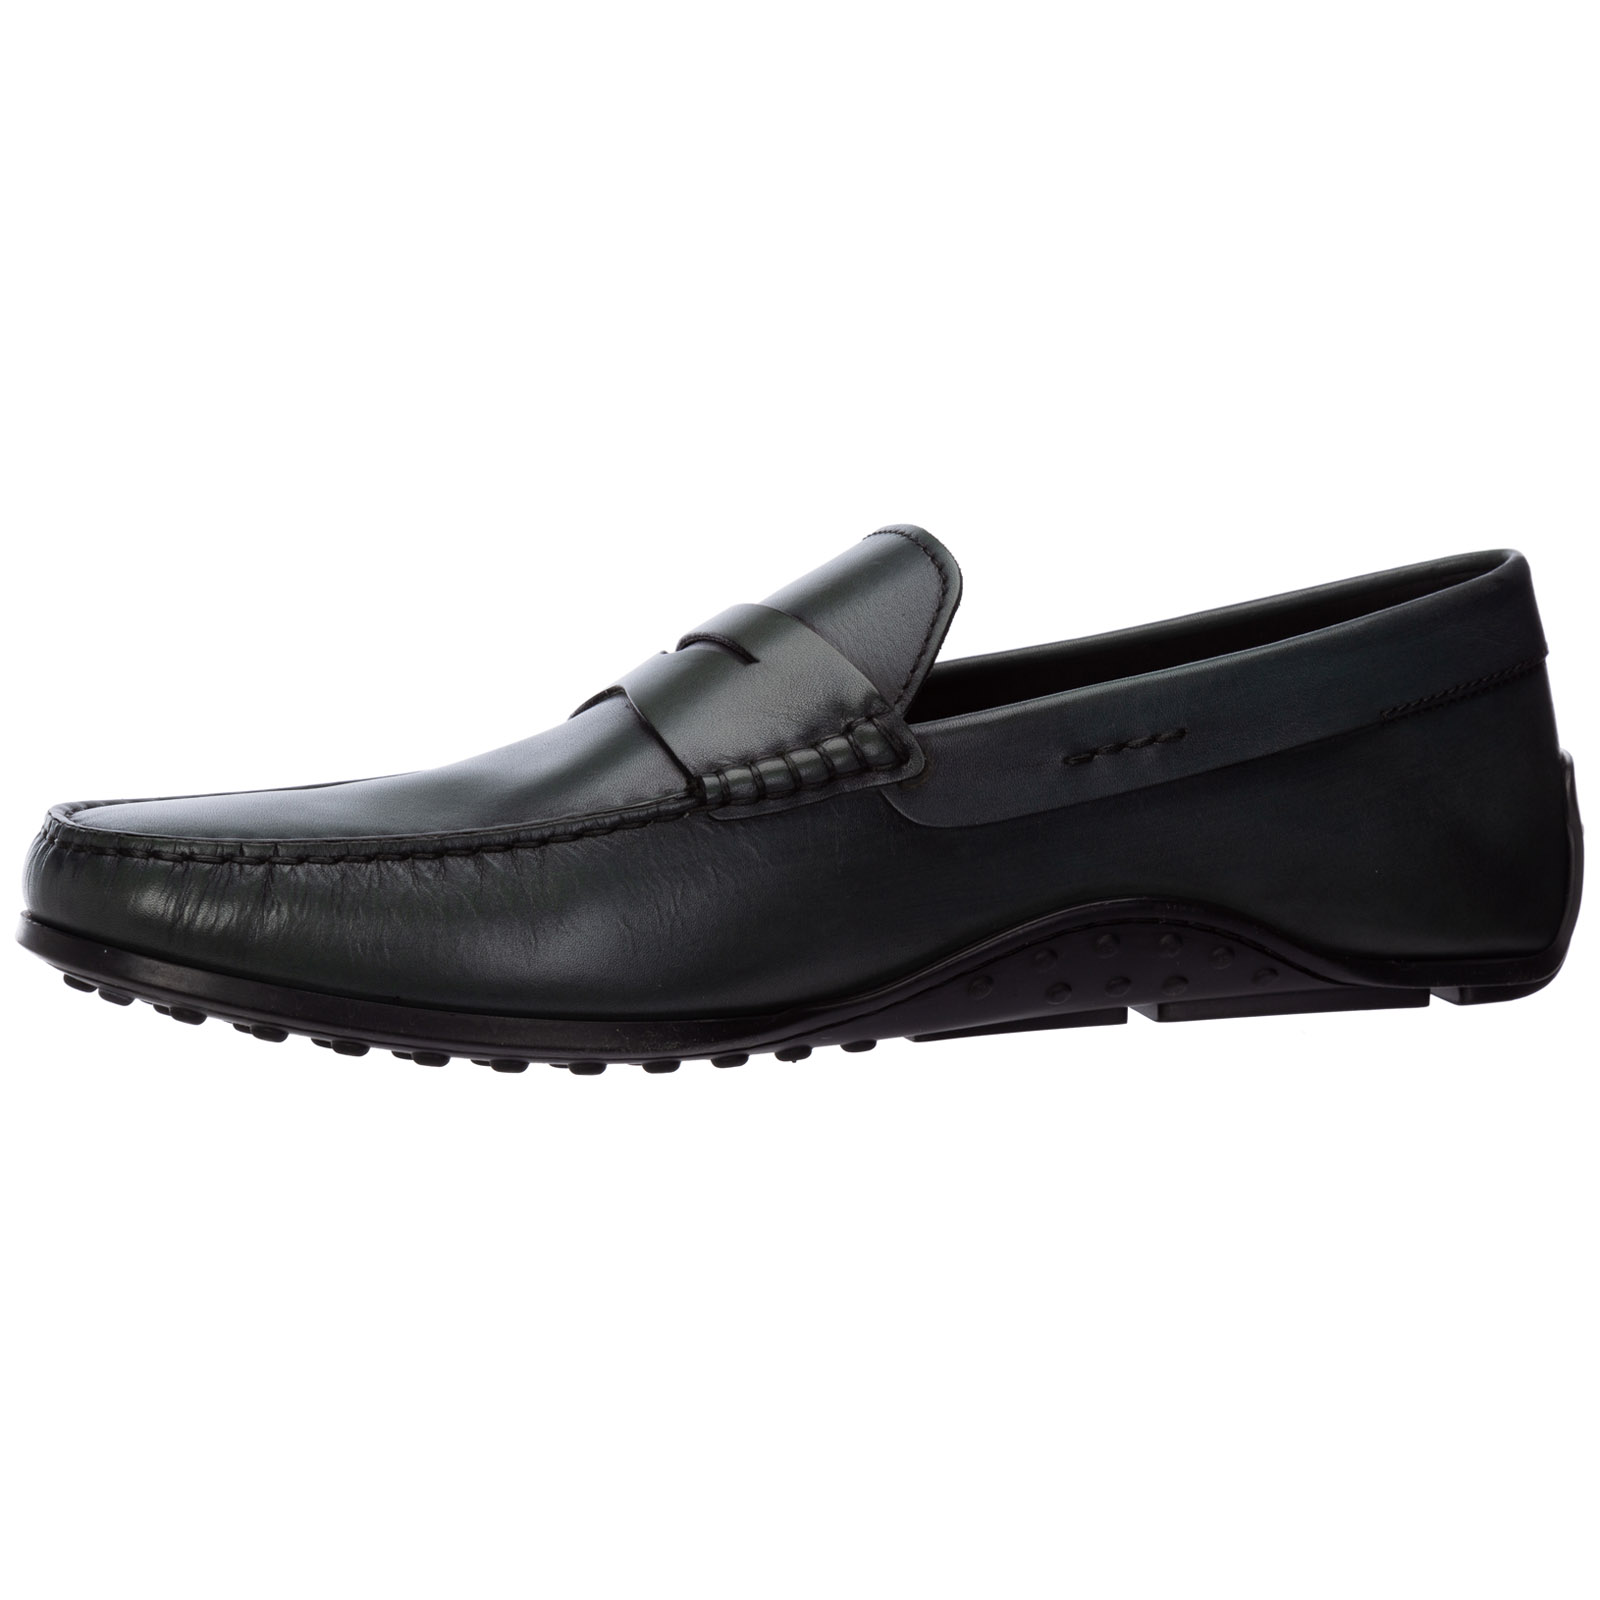 Men's leather loafers moccasins  gomma